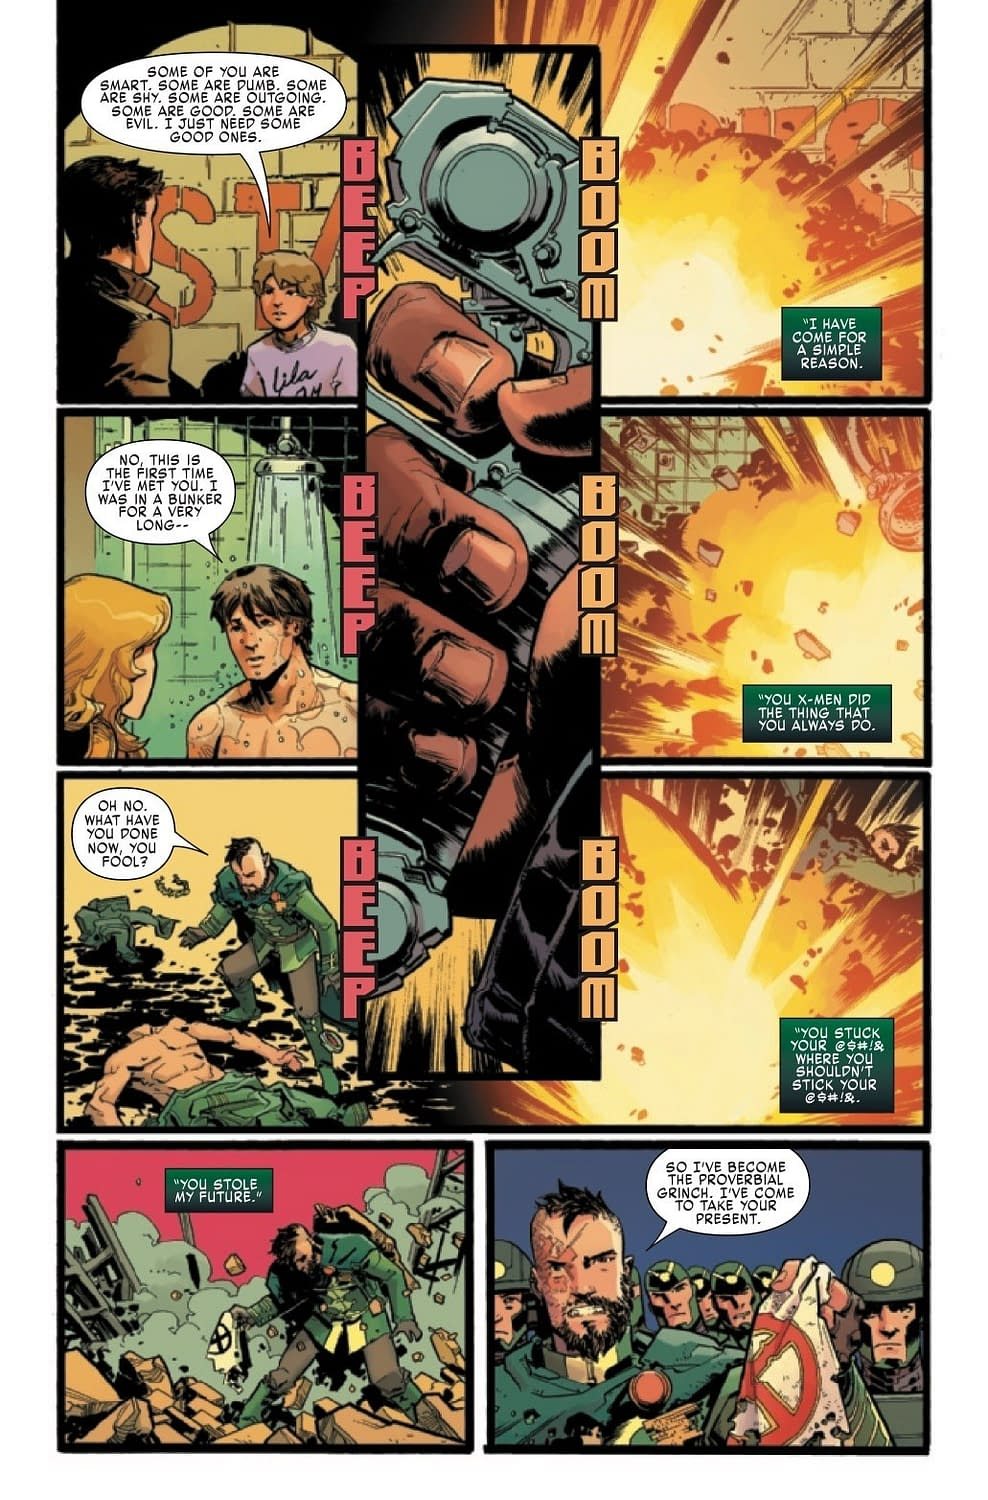 Does Next Week's Multiple Man #5 Finally Explain What's Going On?